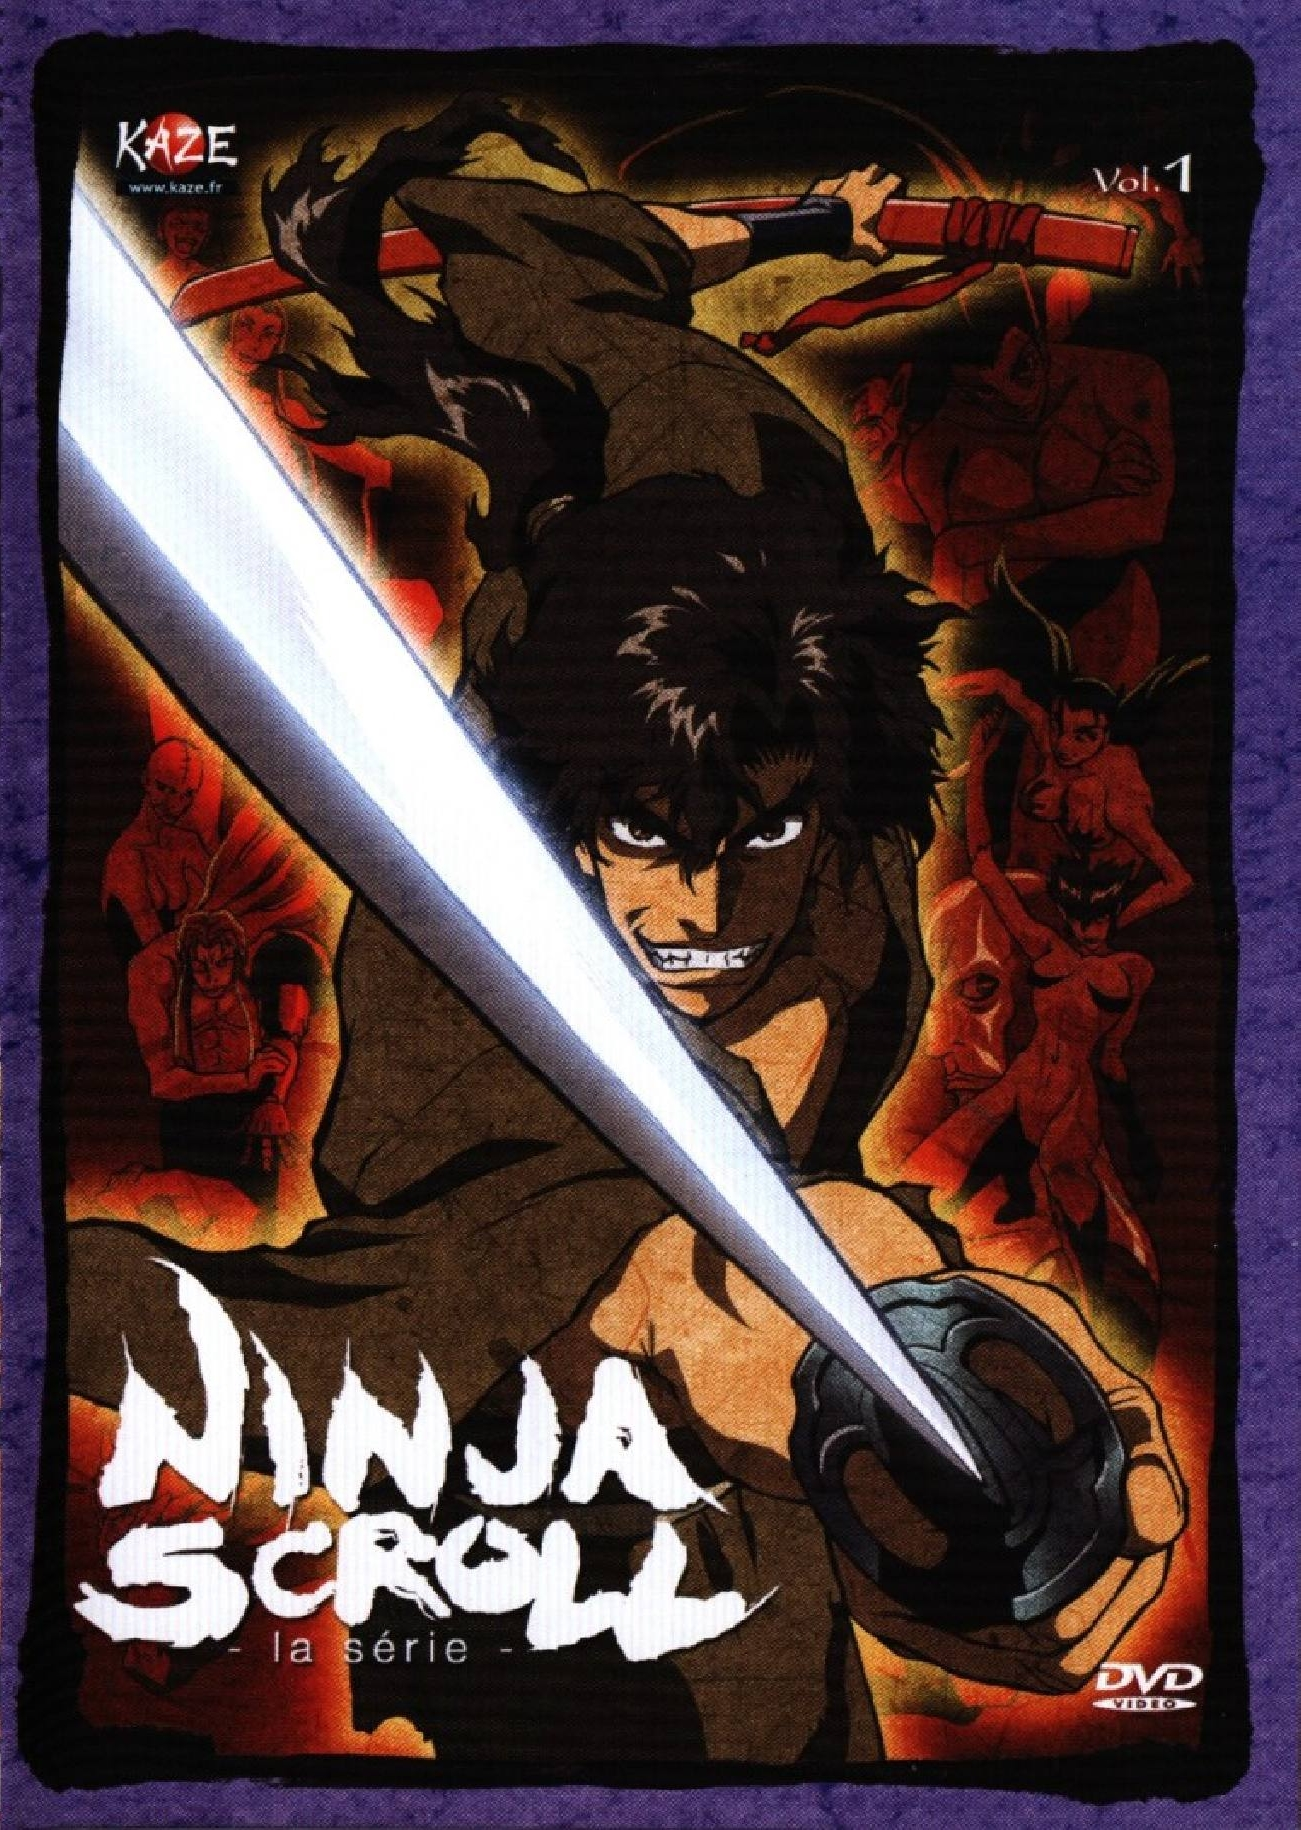 Ninja Scroll The Series Review The Anime Accord